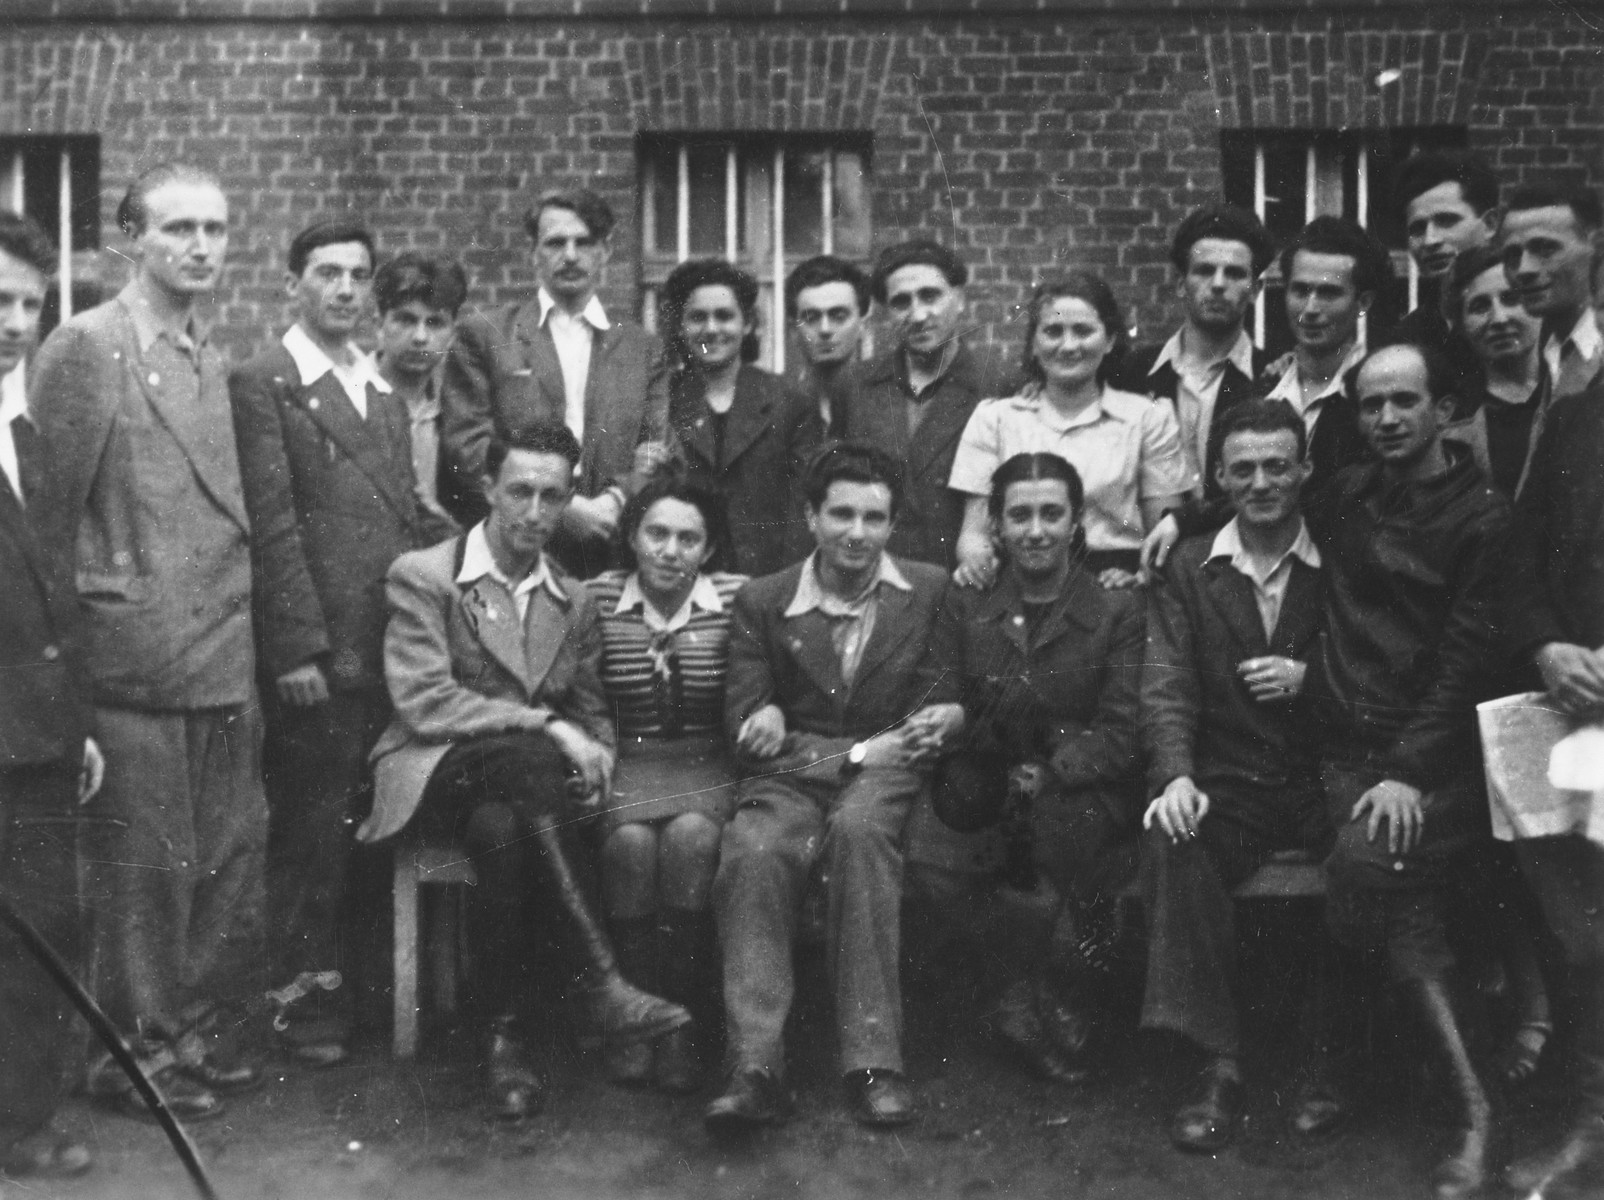 Group portrait of members of the Zionist group, Dror, in the Rosenheim displaced persons' camp.  Yitzchak (Antek) Zuckerman is standing in the back, fifth from the left.  Next to him is Fira Scapinker.